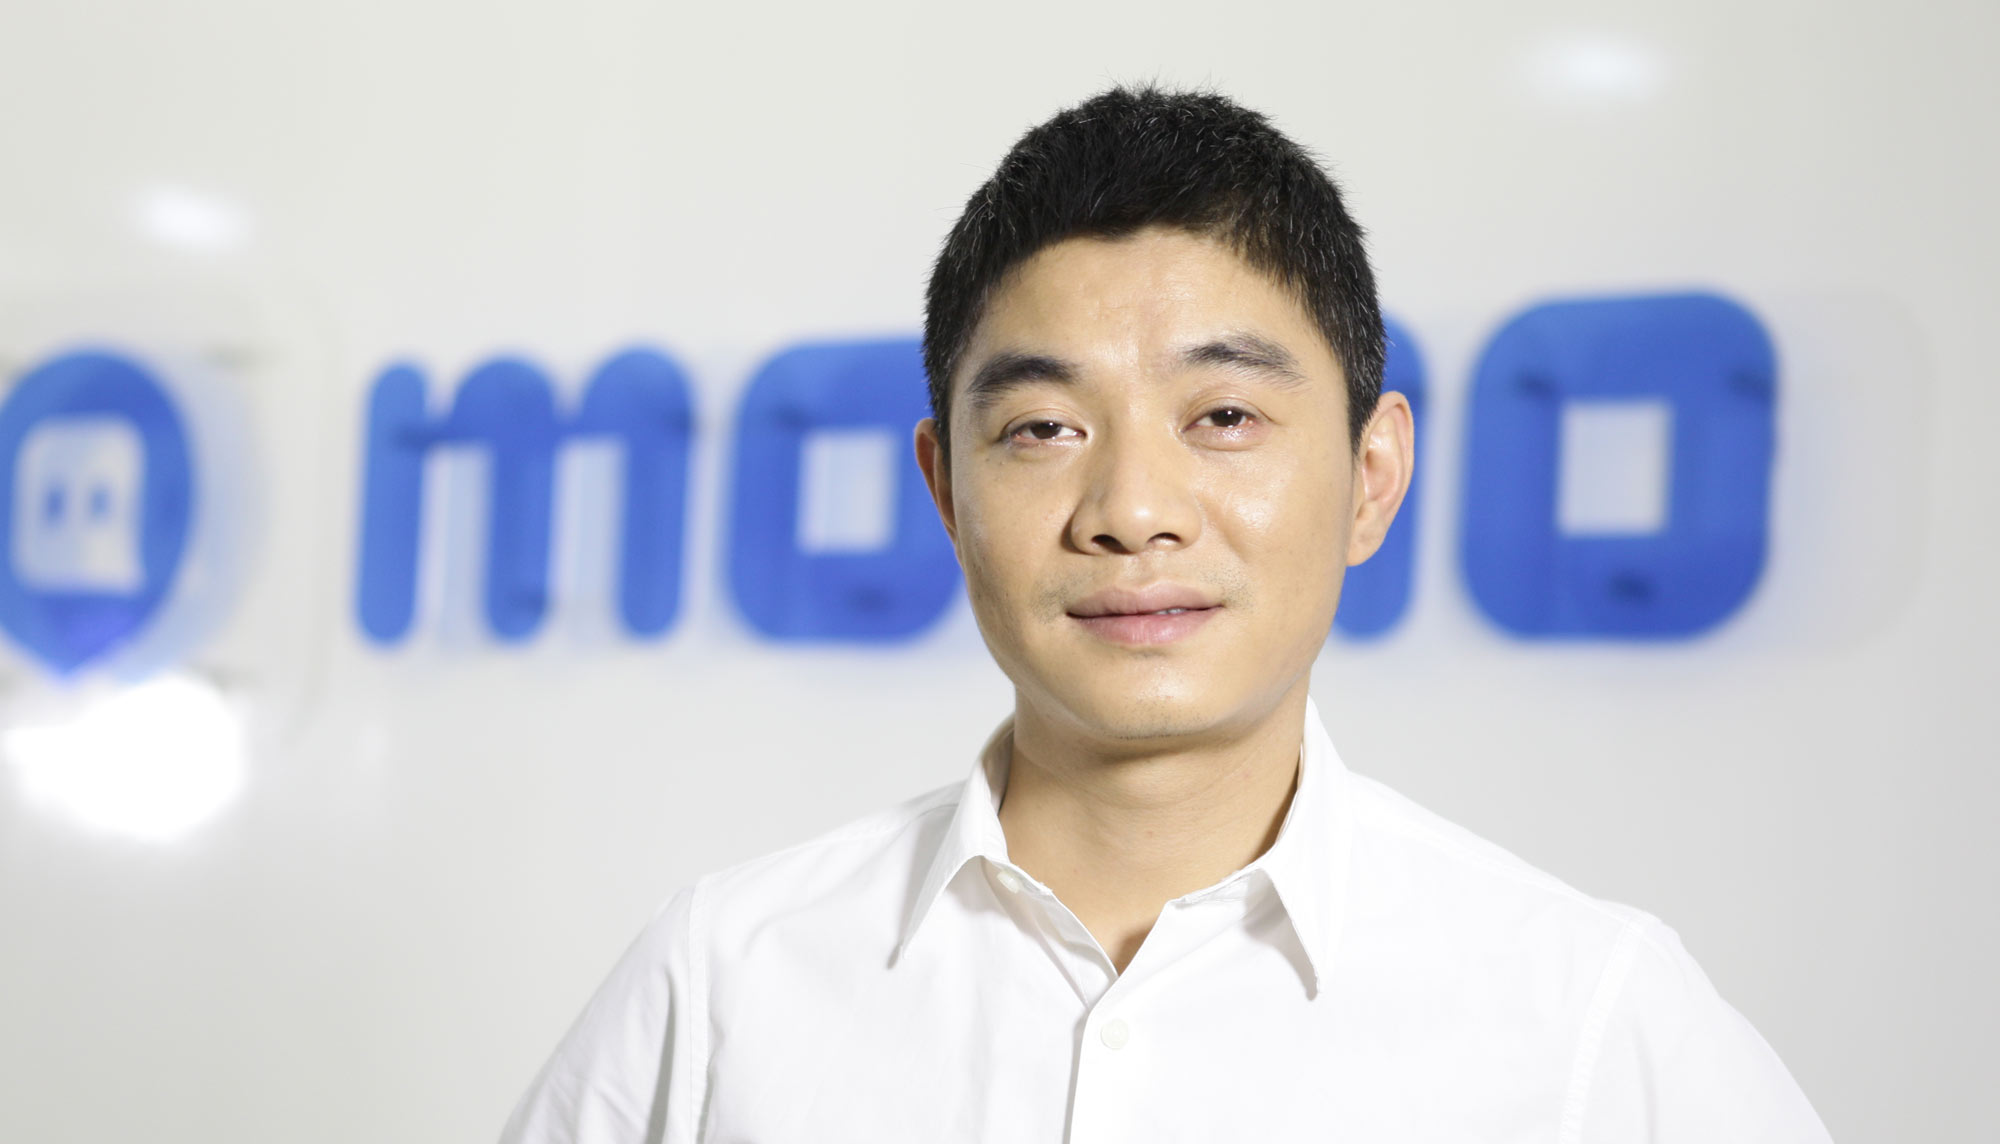 Momo CEO Tang Yan, pictured, plans to take his company private and relist it in China.